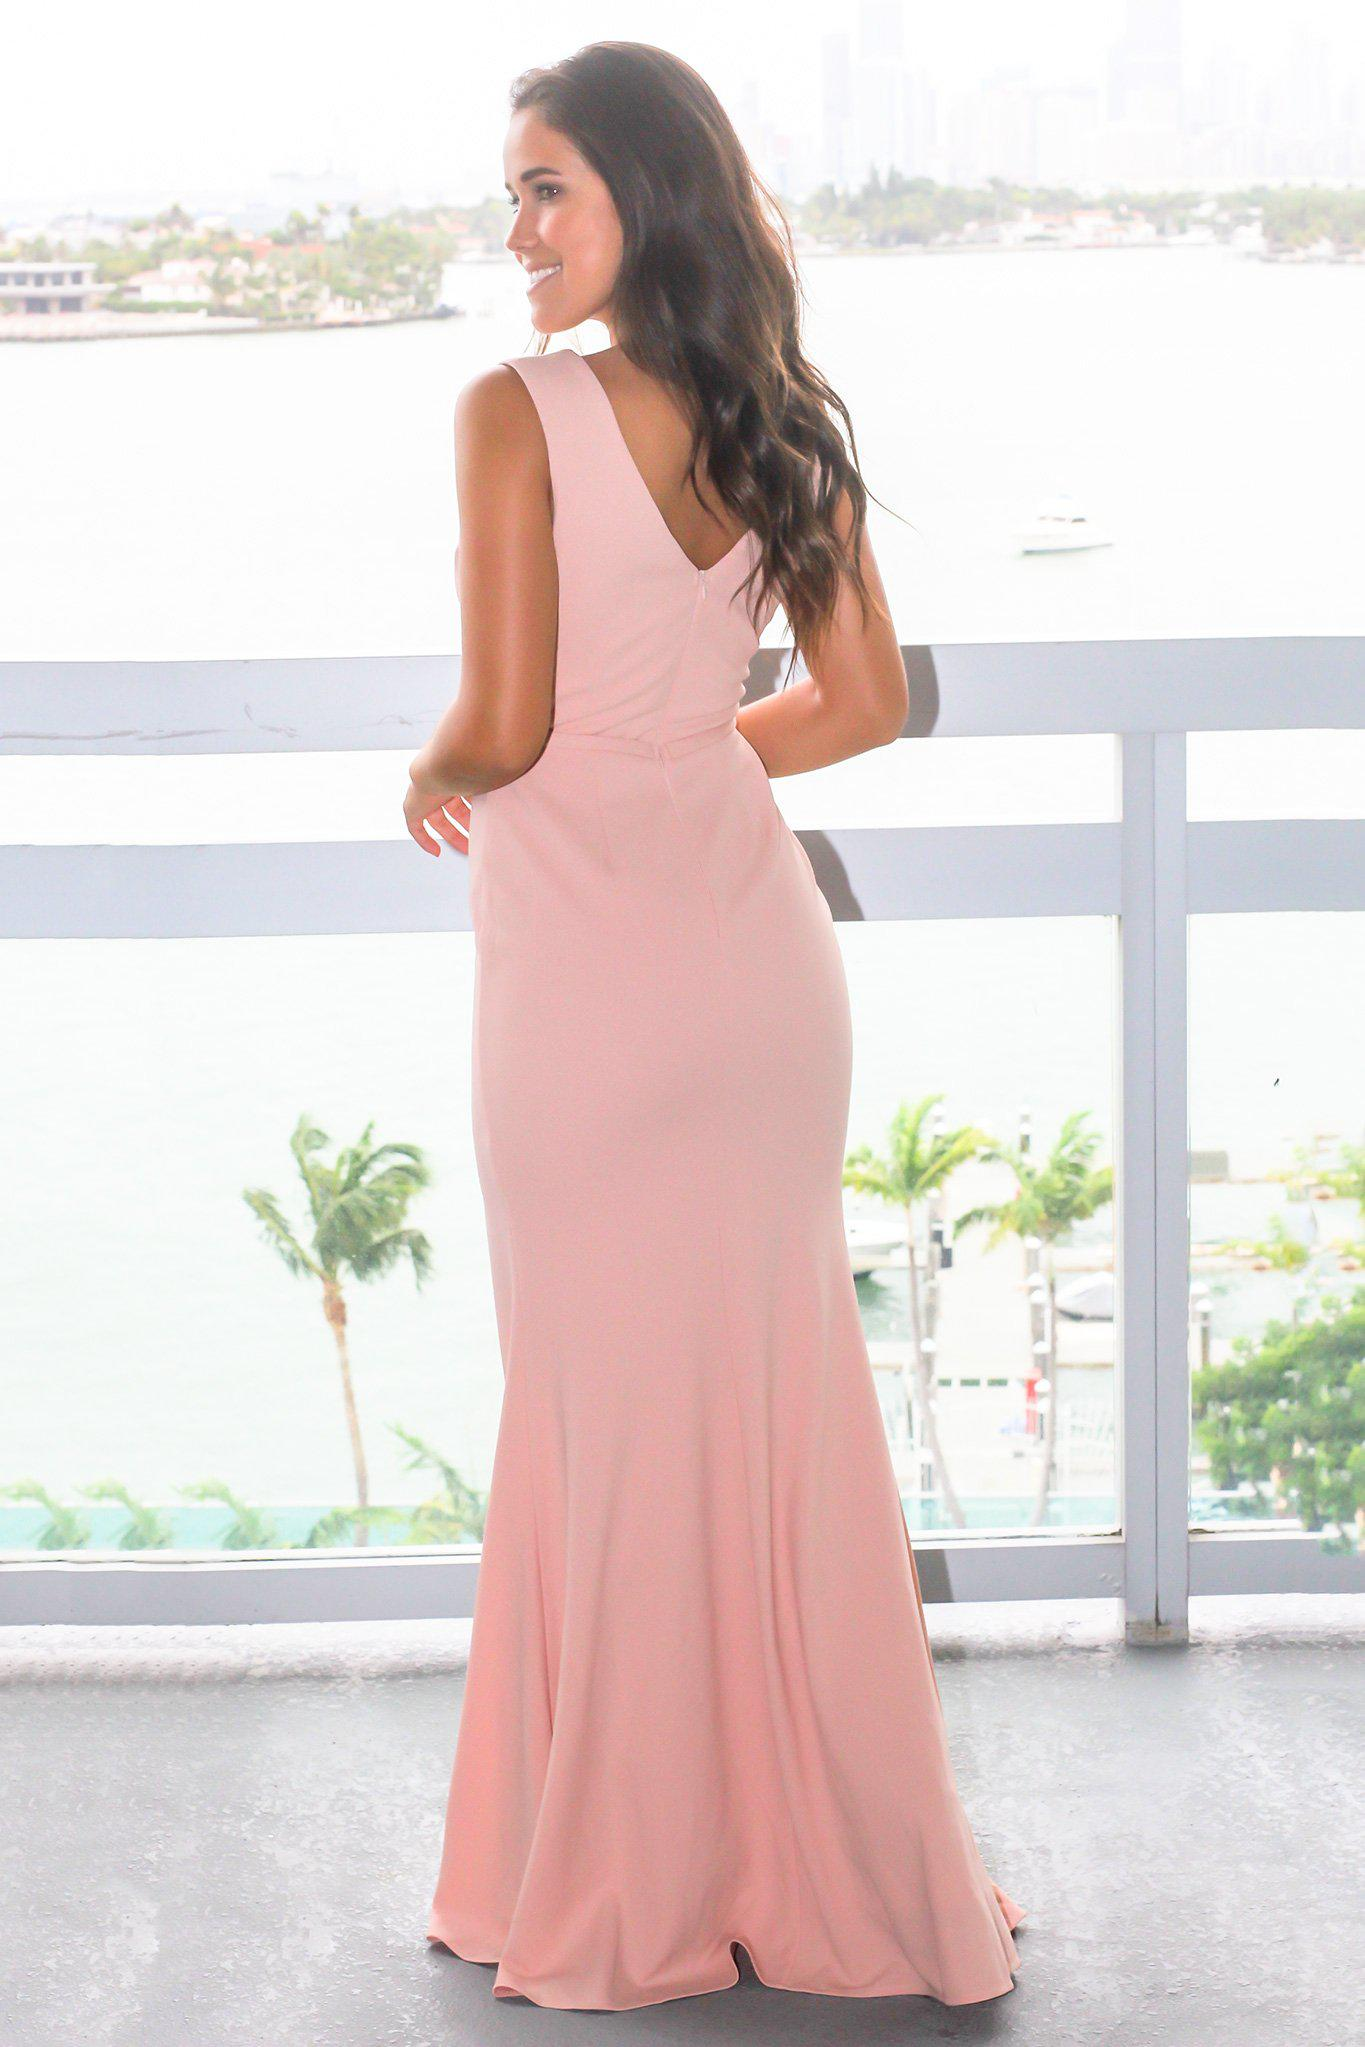 Blush Scalloped V-Neck Maxi Dress with Gold Belt